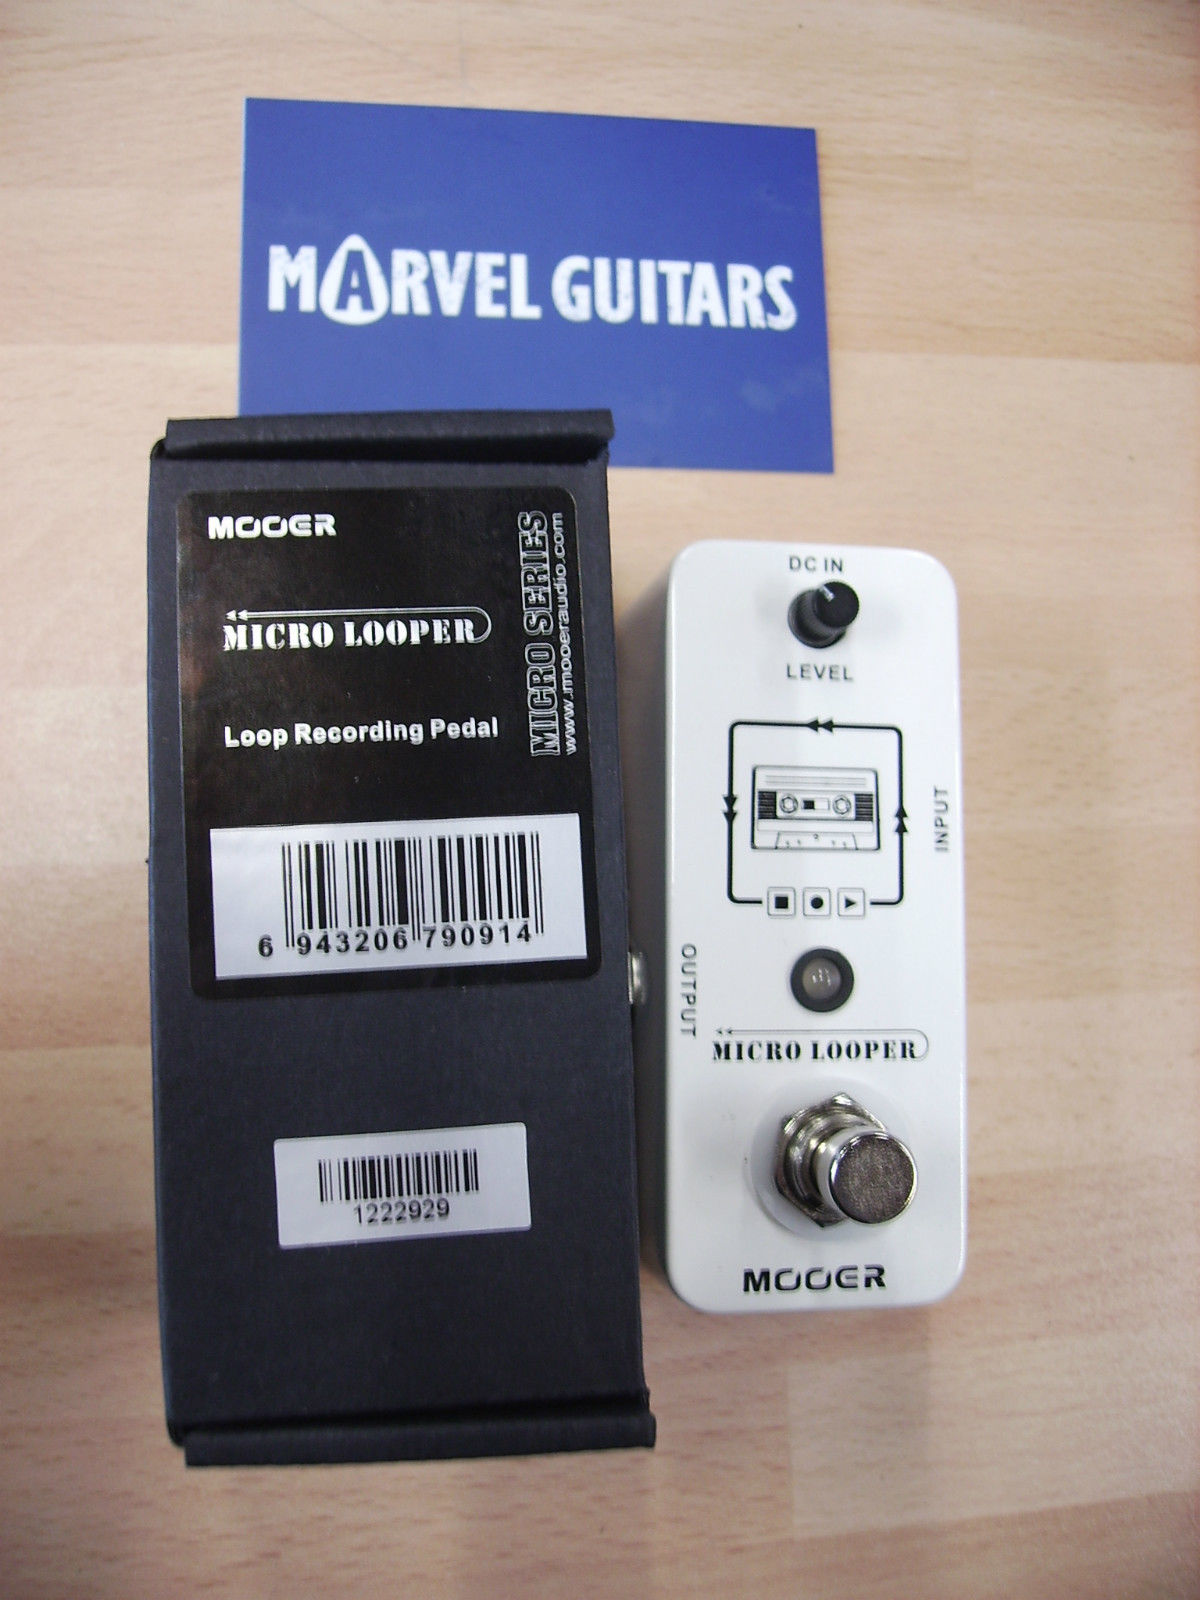 mooer micro looper electric guitar effects pedal. Black Bedroom Furniture Sets. Home Design Ideas